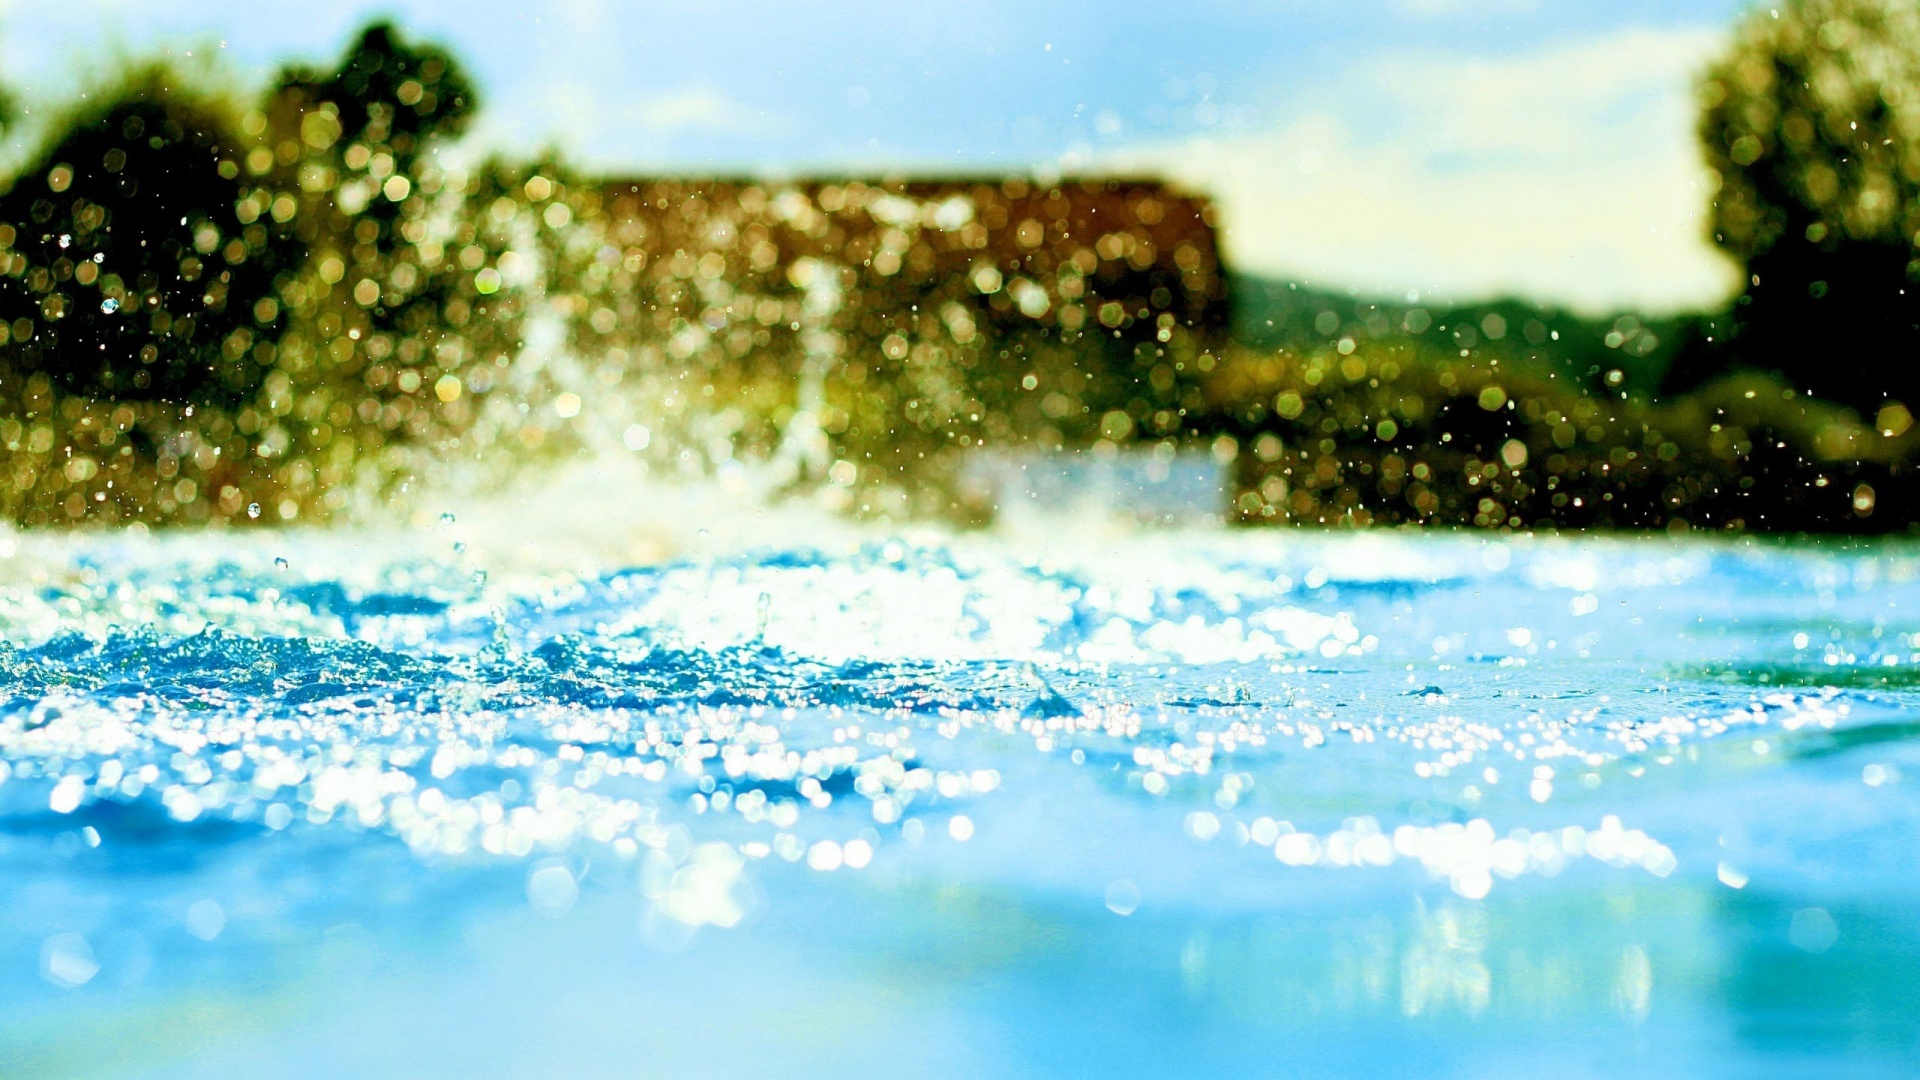 Download free water splash wallpapers for your mobile phone by